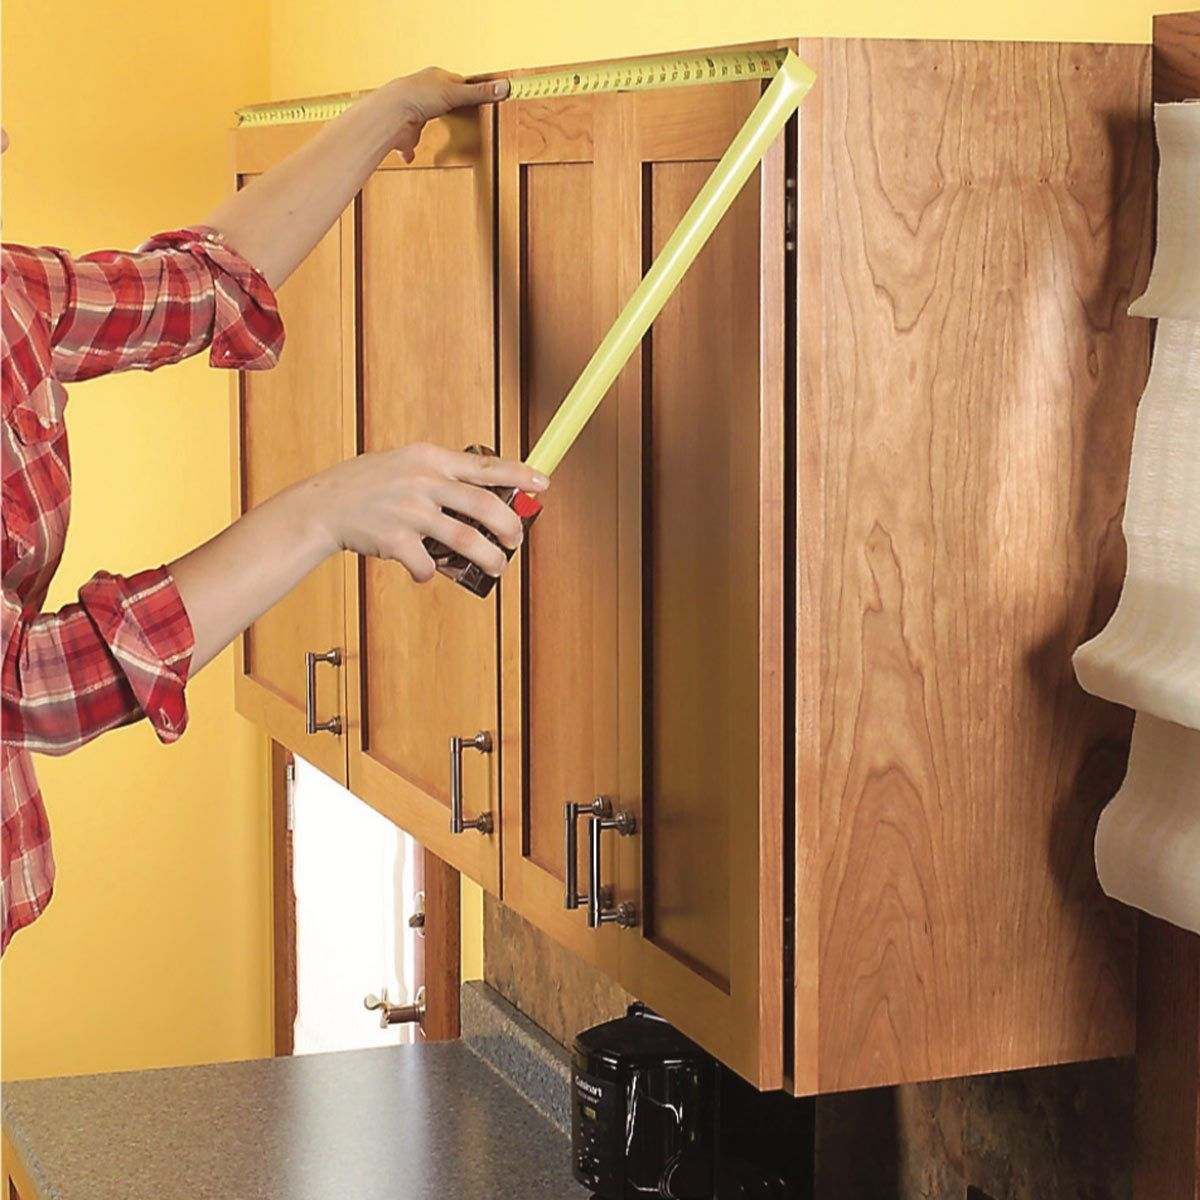 How To Add Shelves Above Kitchen Cabinets Diy Family Handyman In 2020 Above Kitchen Cabinets Diy Cabinets Diy Kitchen Cabinets